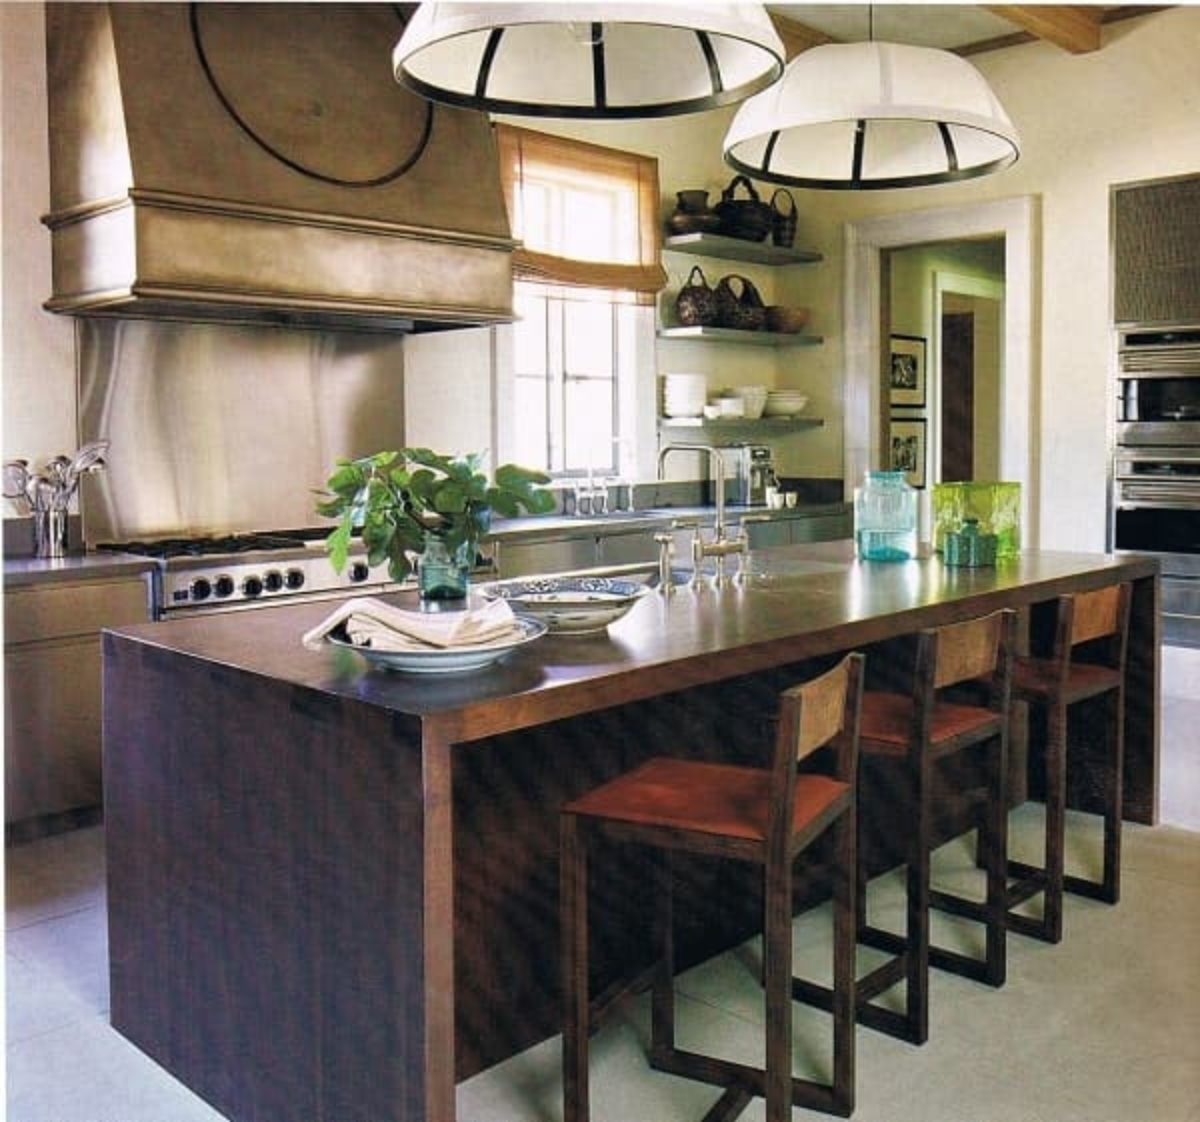 9 Classic Design Kitchen Island Stools With Backs Under 100